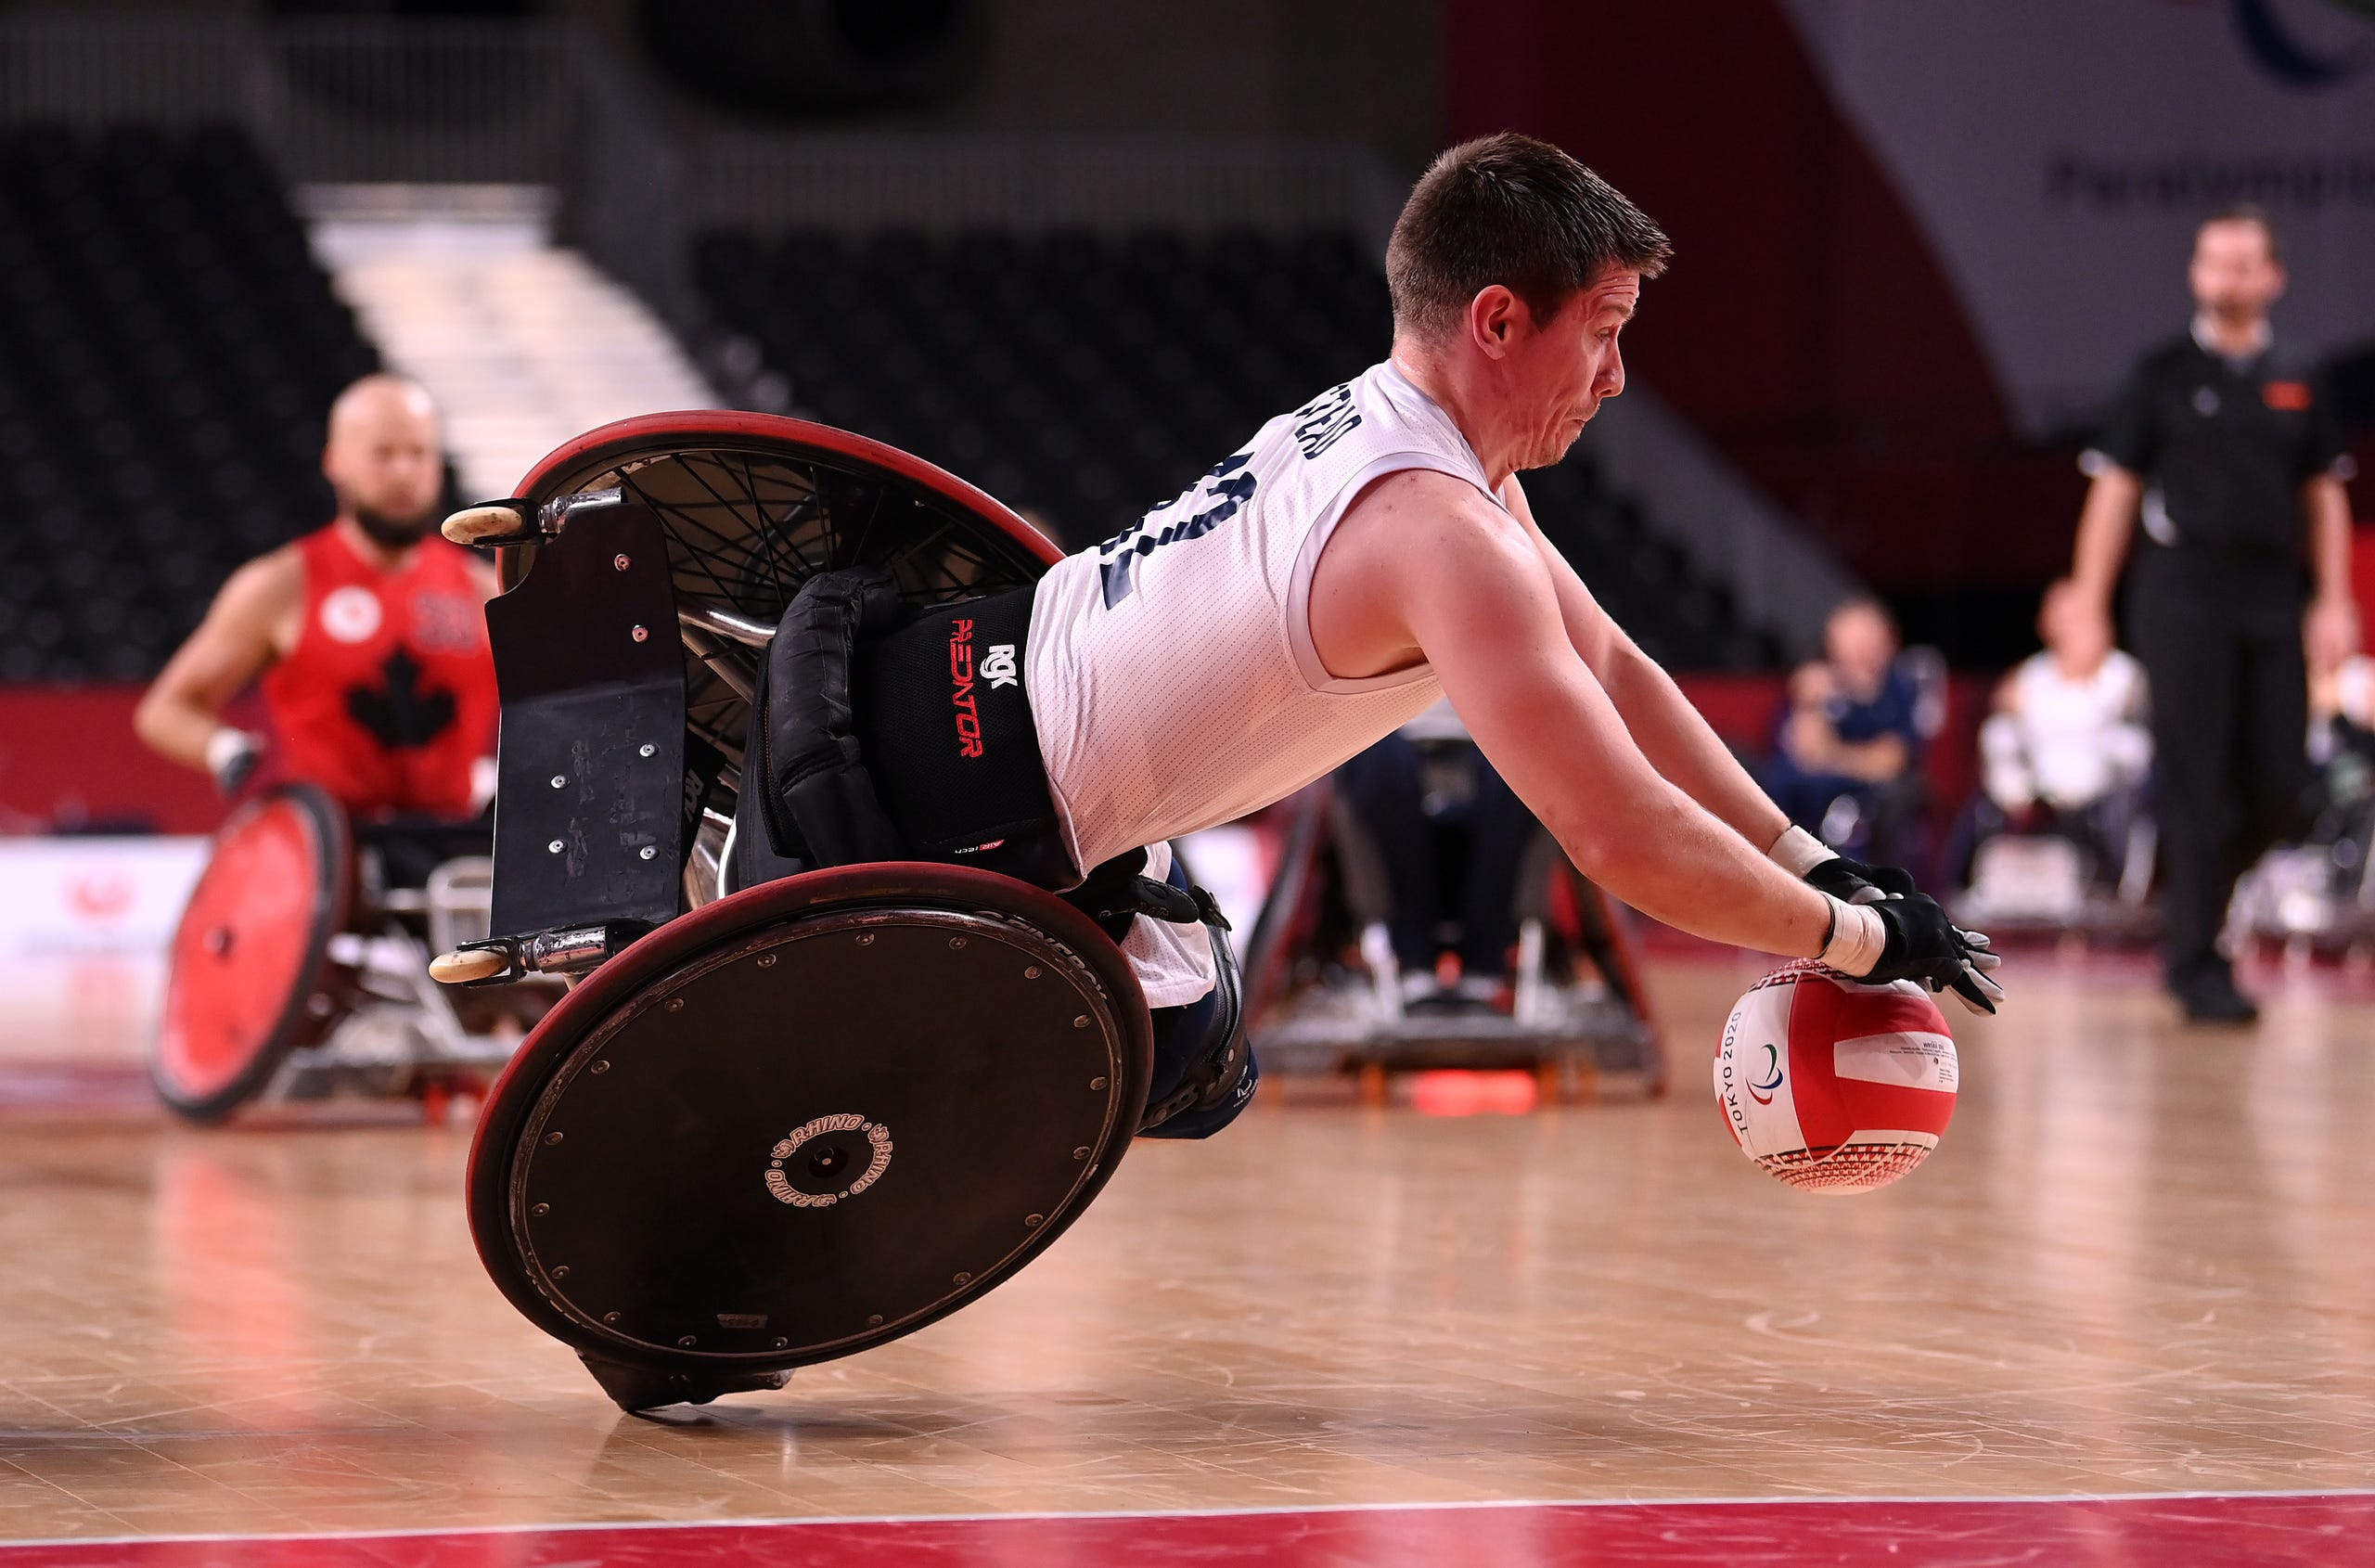 August 25, 2021: Jamie Stead of Team Great Britain falls to the floor after being tackled by Cody Caldwell of Team Canada during the Wheelchair Rugby Pool Phase Group match between Team Great Britain and Team Canada on day 1 of the Tokyo 2020 Paralympic Games at Yoyogi National Stadium  in Tokyo, Japan.